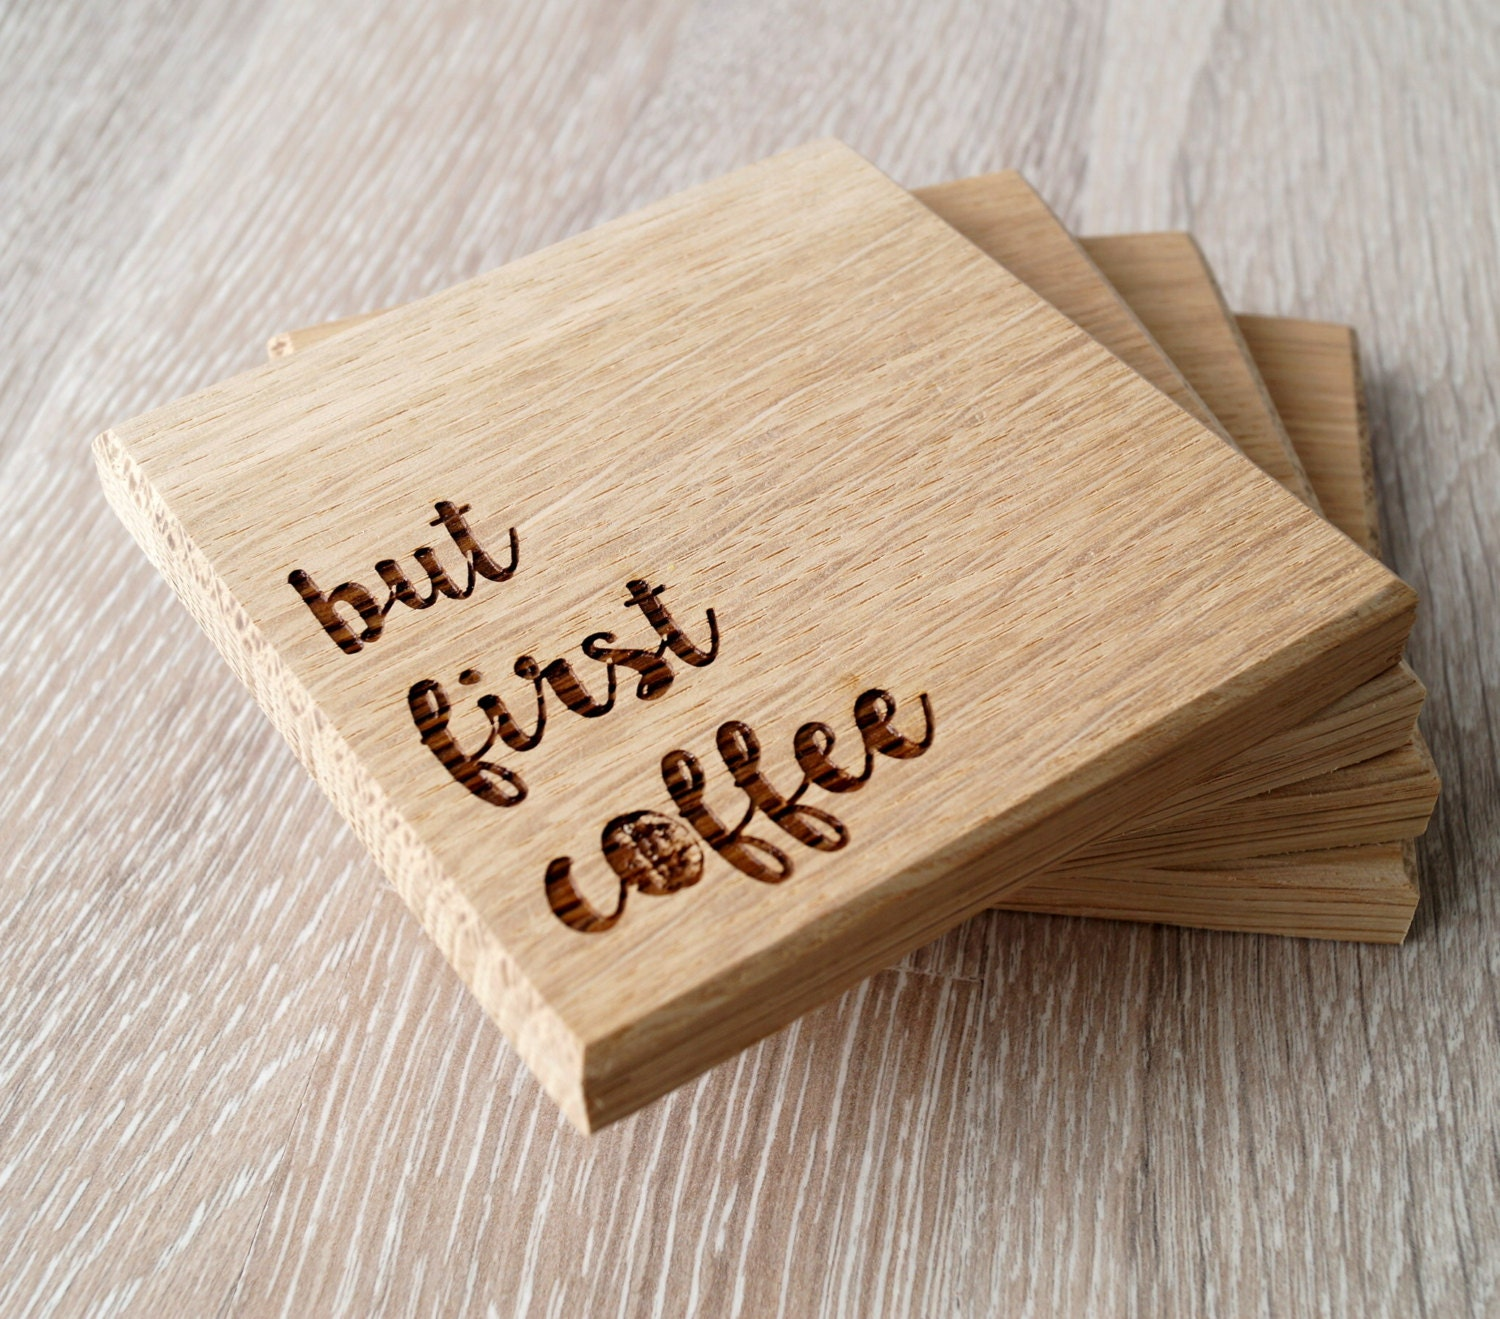 Wooden Coasters Solid Wood Drink Or Coffee Coasters Engraved